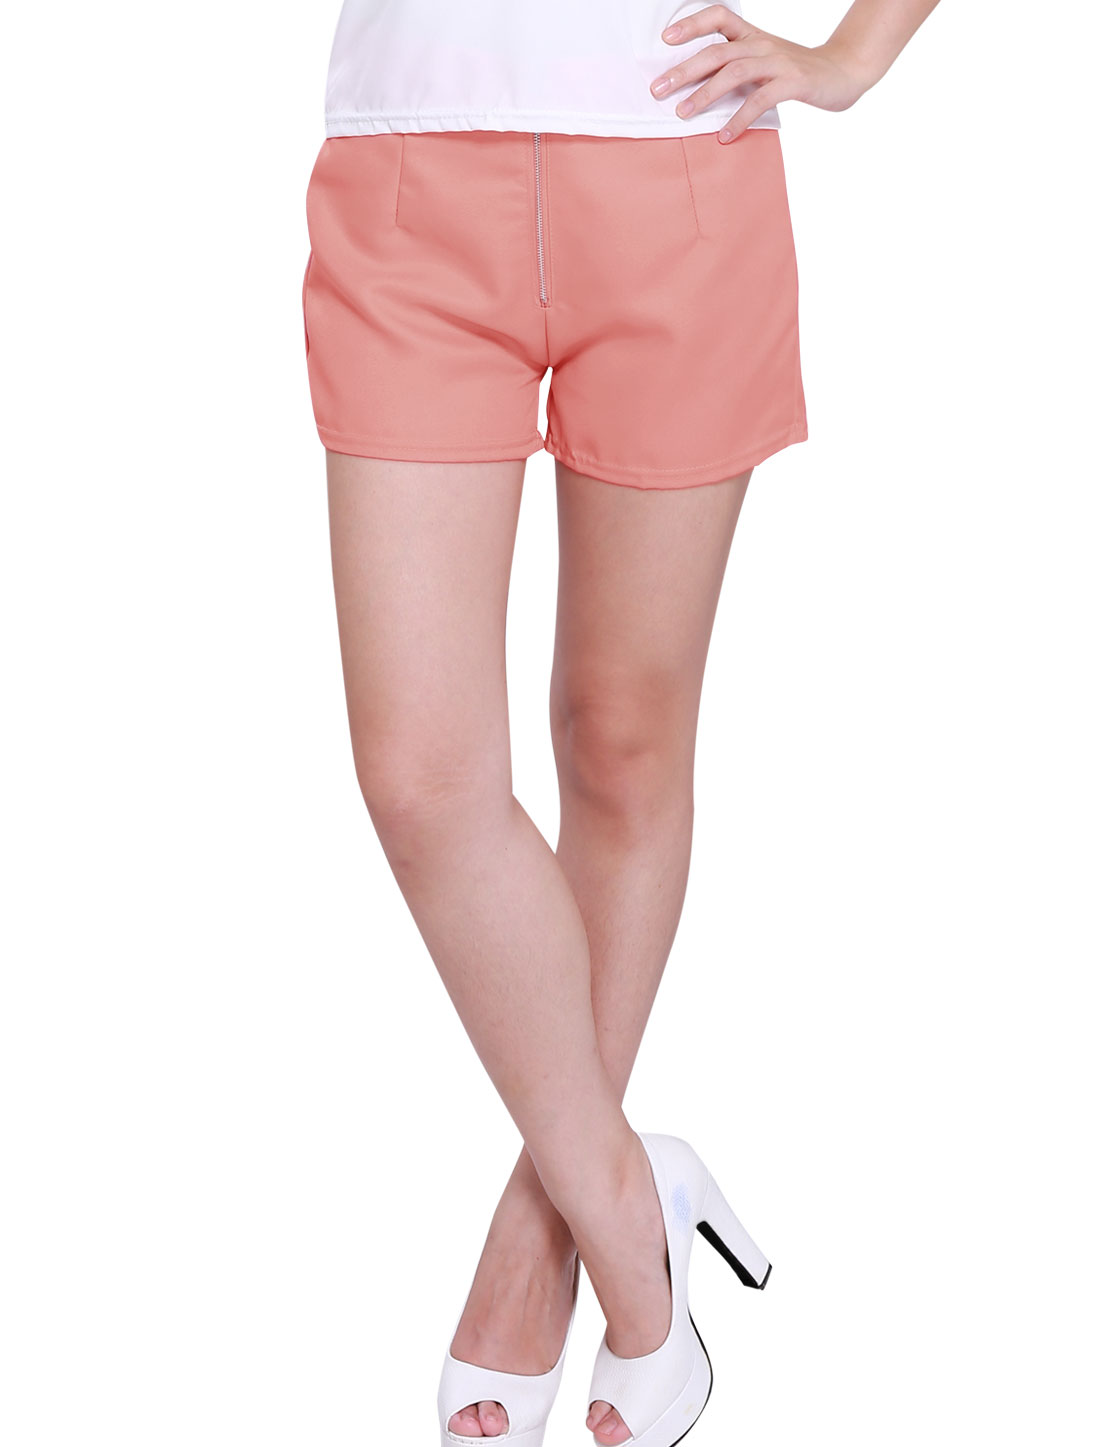 Zipper Fly Front High Rise Elastic Waist Elegant Shorts for Lady Pink S